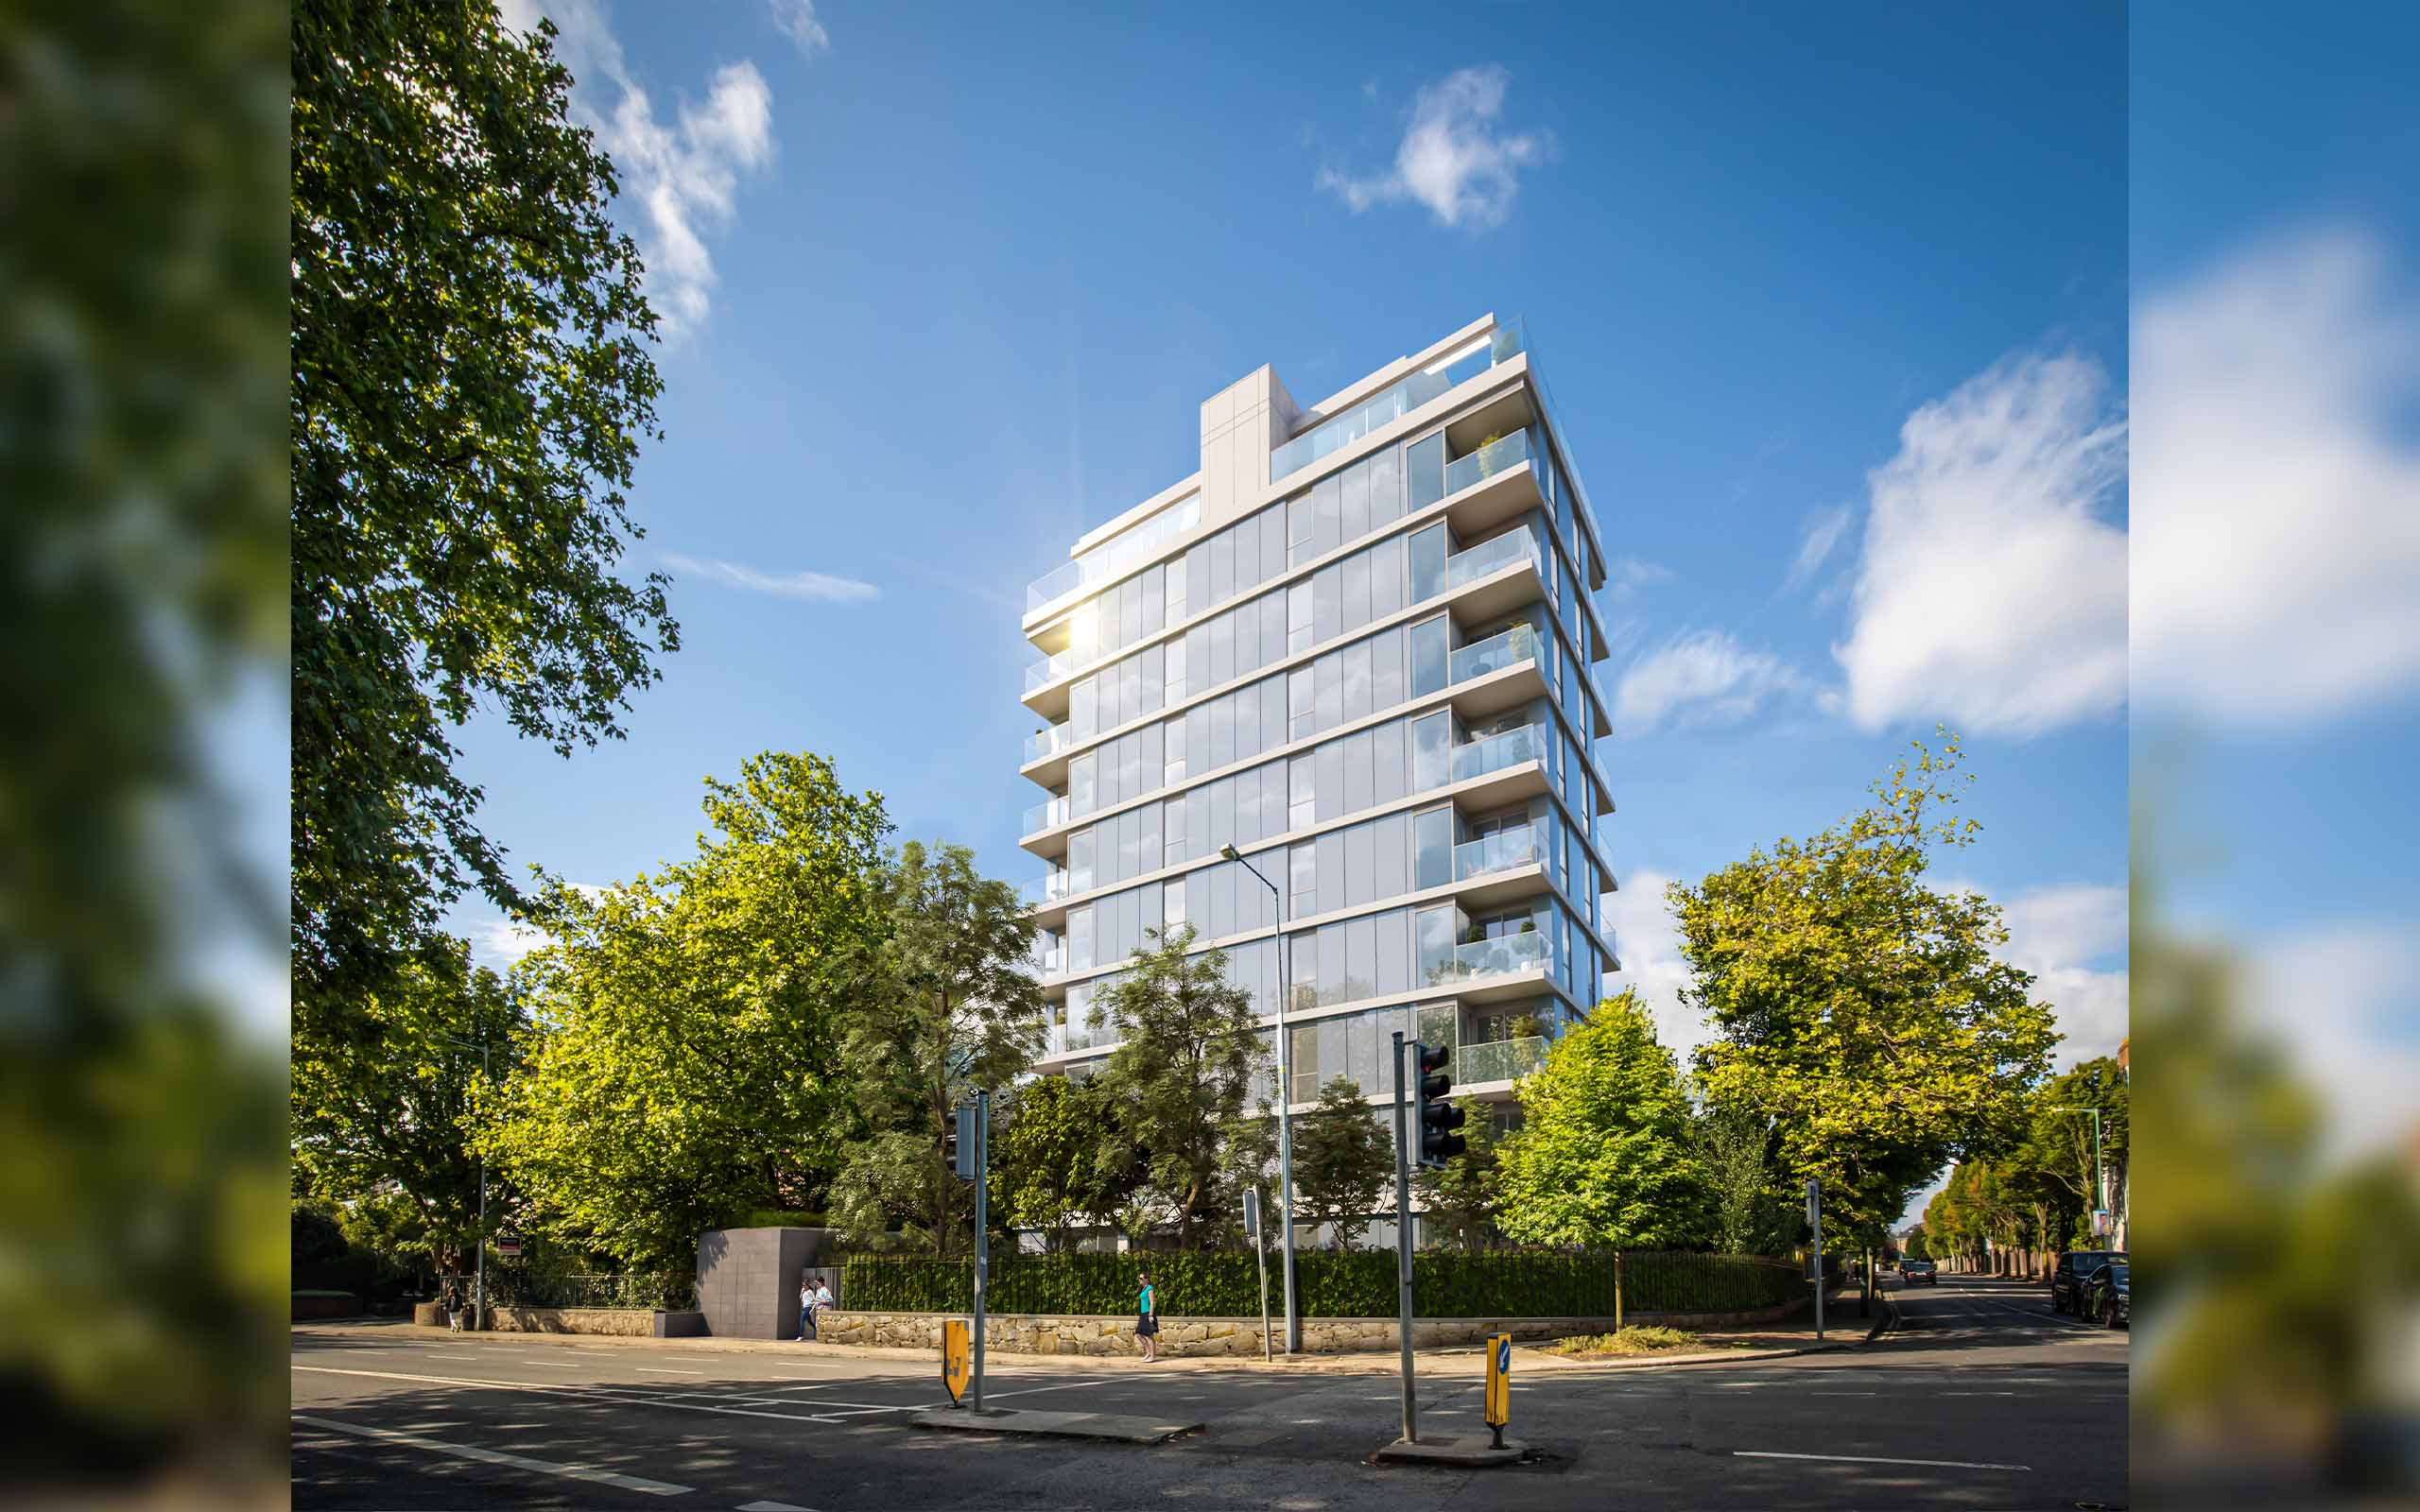 Architectural CGI of 10 storey apartment development in plans at Appian Way, Dublin 4. Developed by Johnny Ronan.